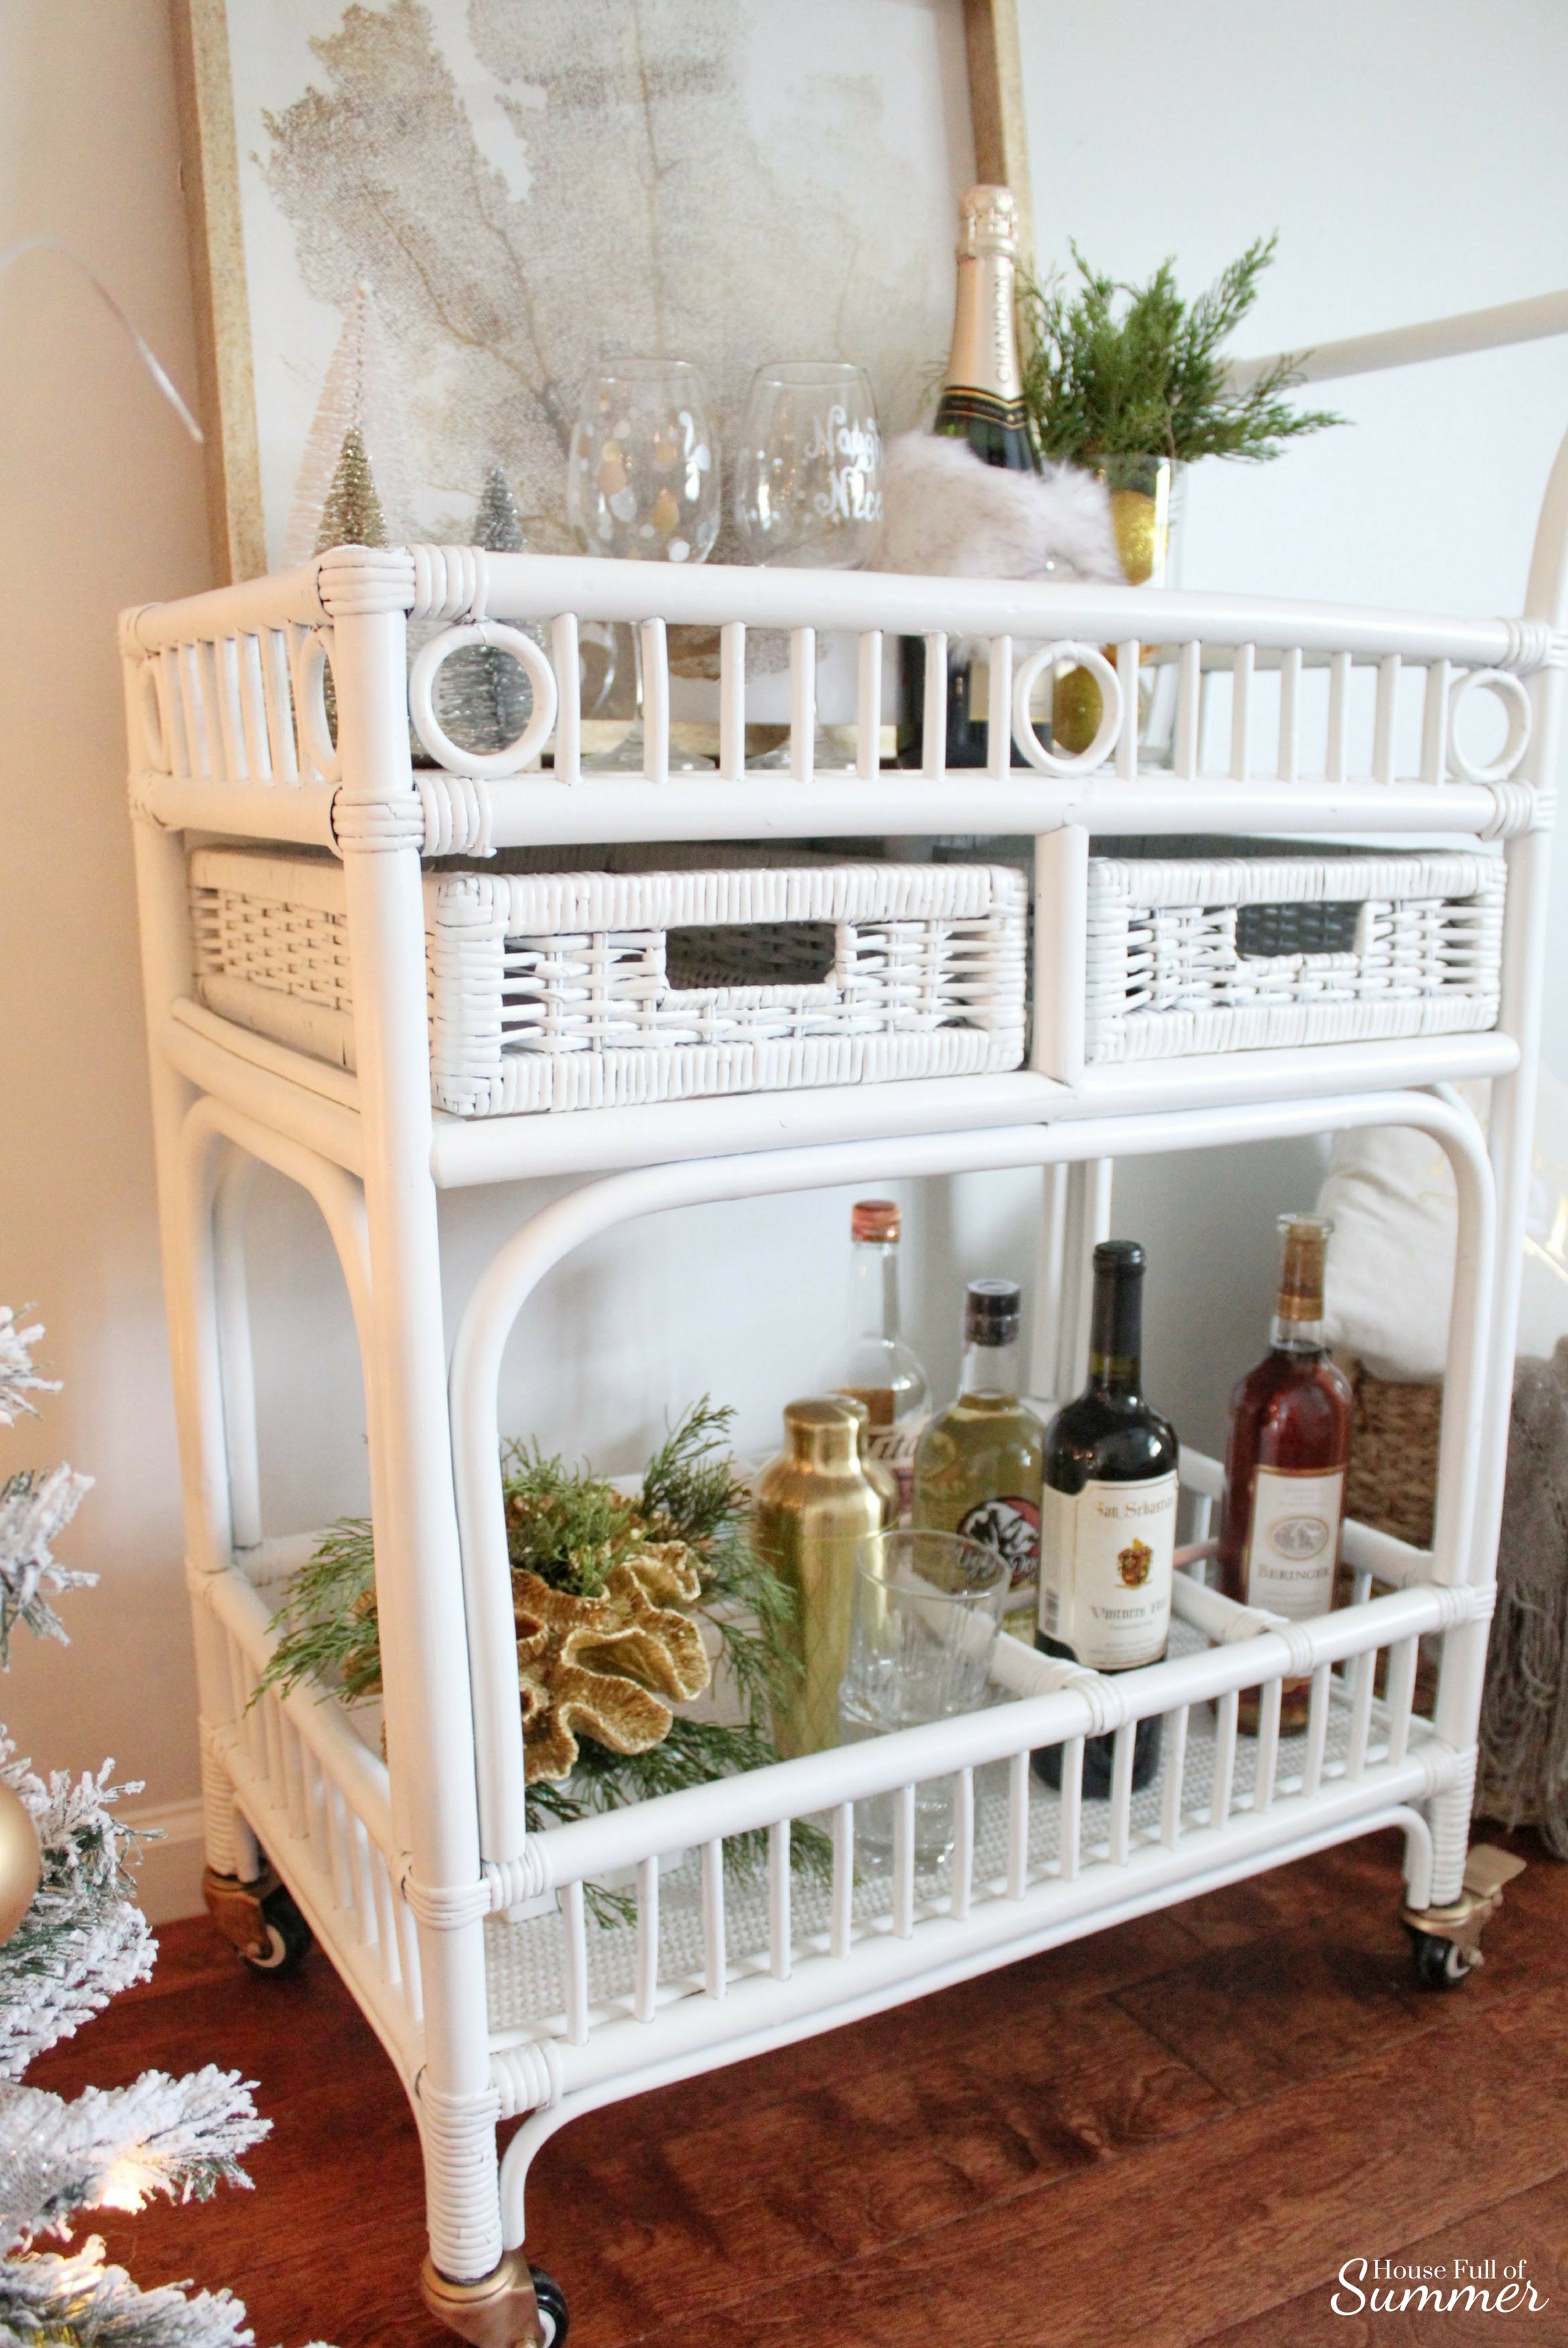 Add New Life to Your Home With This New Year's Resolution | House Full of Summer blog adding greenery to your home, decorating with plants, fronds, trimmings, winter decor, home decor, coastal home interior, white bar cart, rattan cart, coastal winter greenery ideas